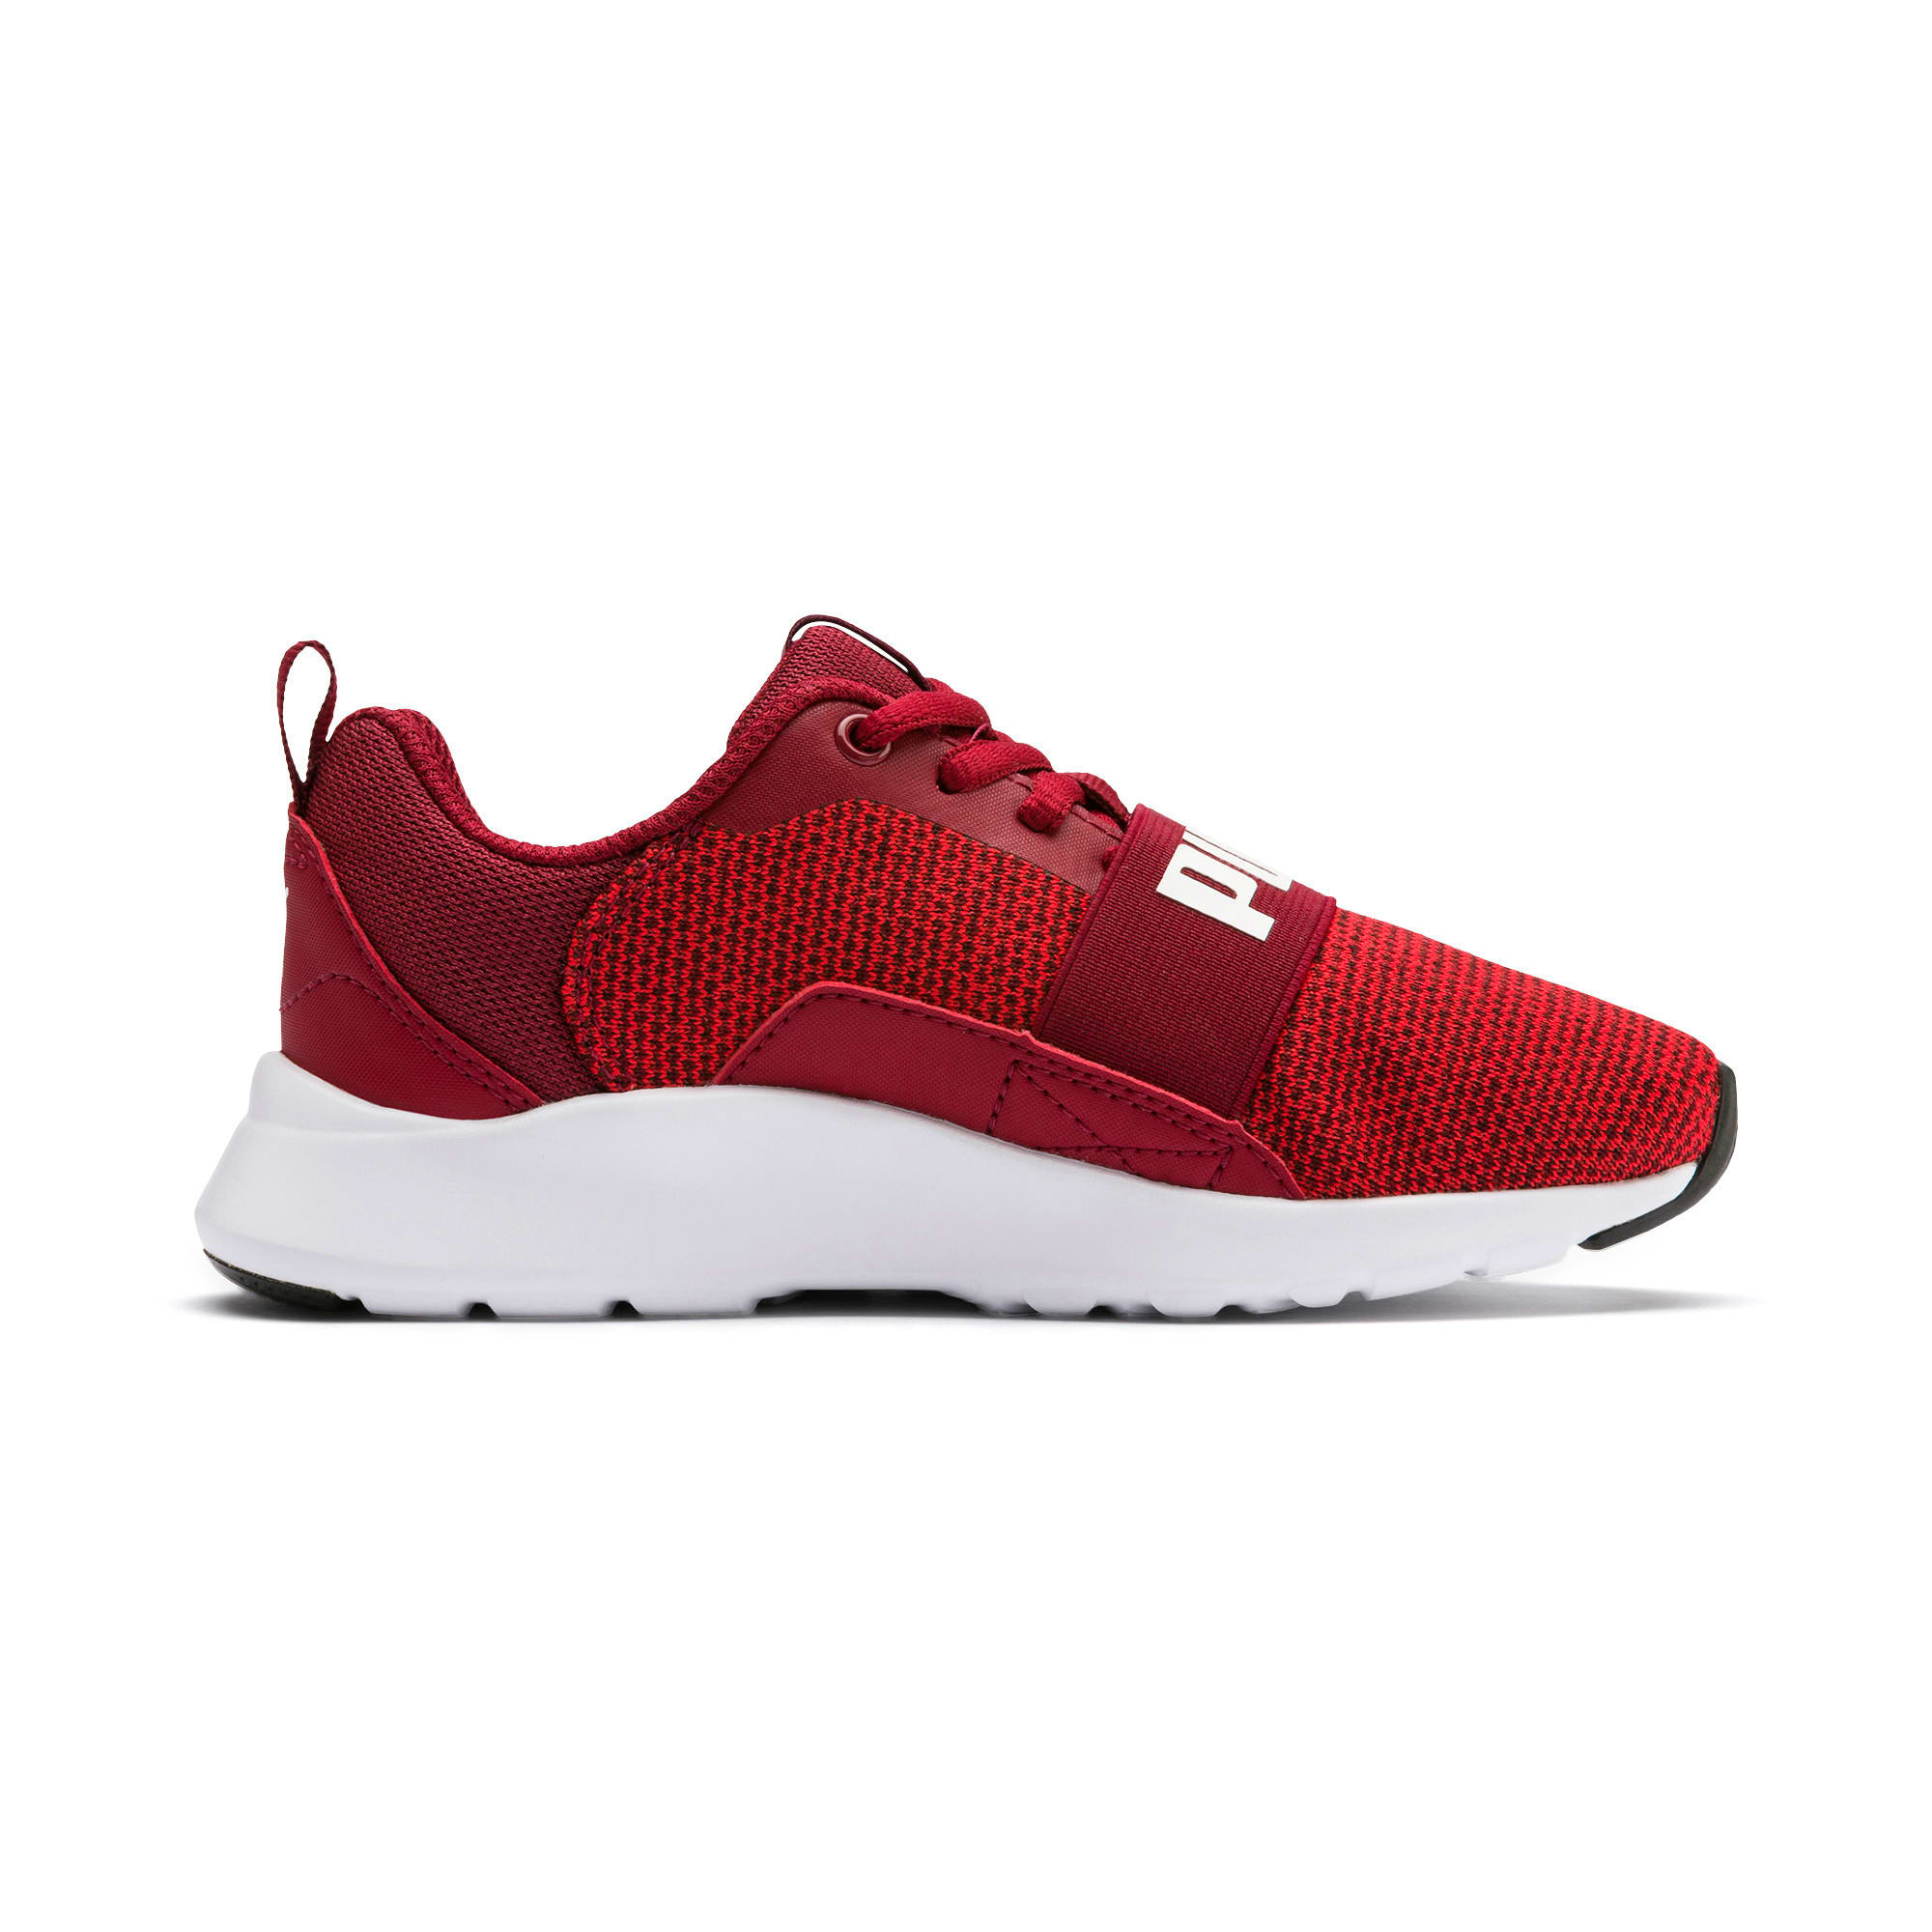 Thumbnail 6 of Wired Knit Kids' Trainers, Rhubarb-Puma White, medium-IND